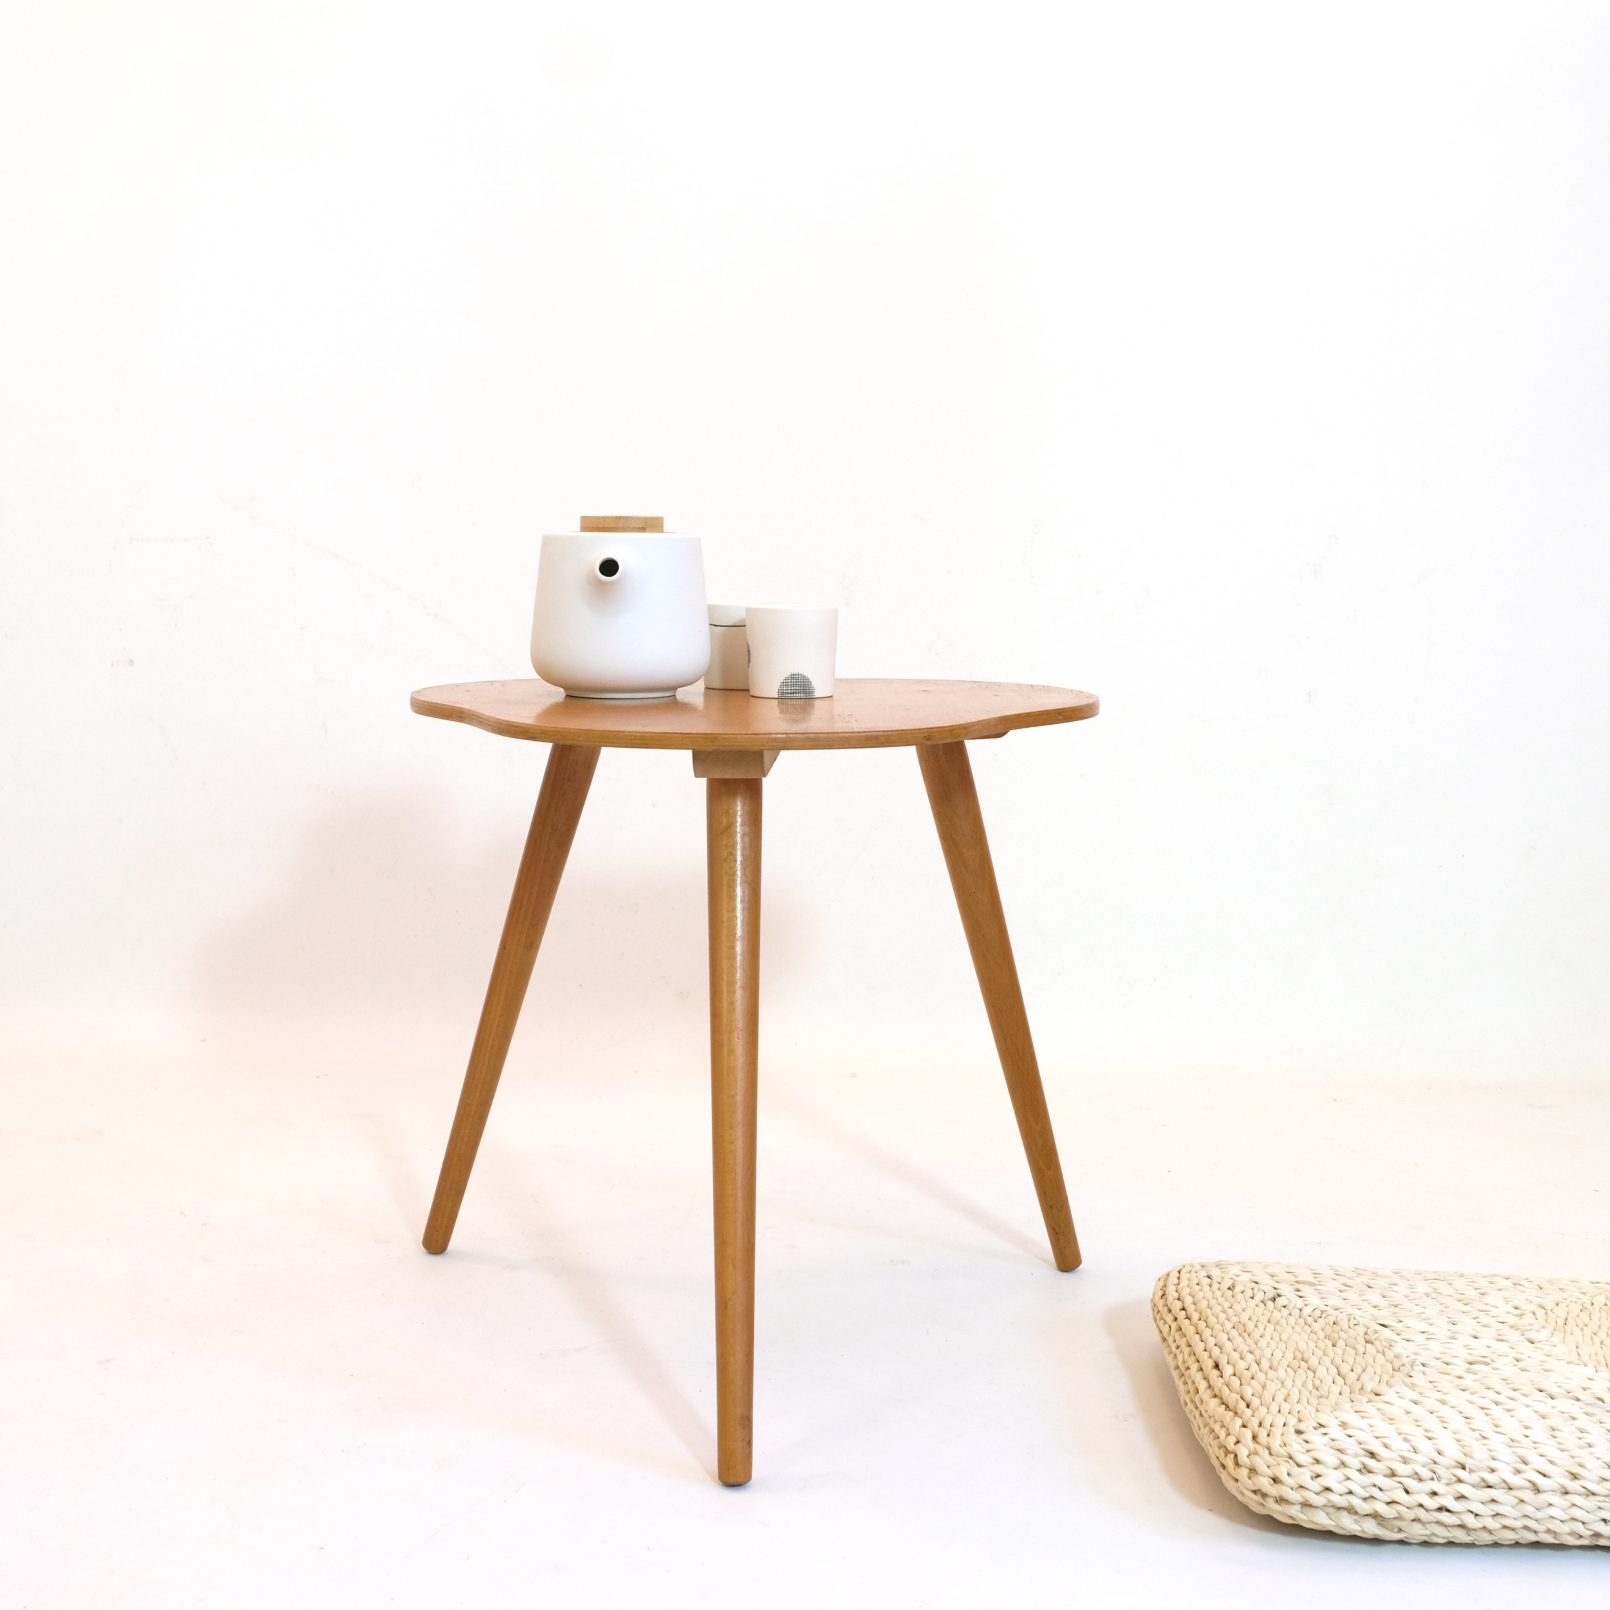 Little tripod coffee table, 1960-1970.